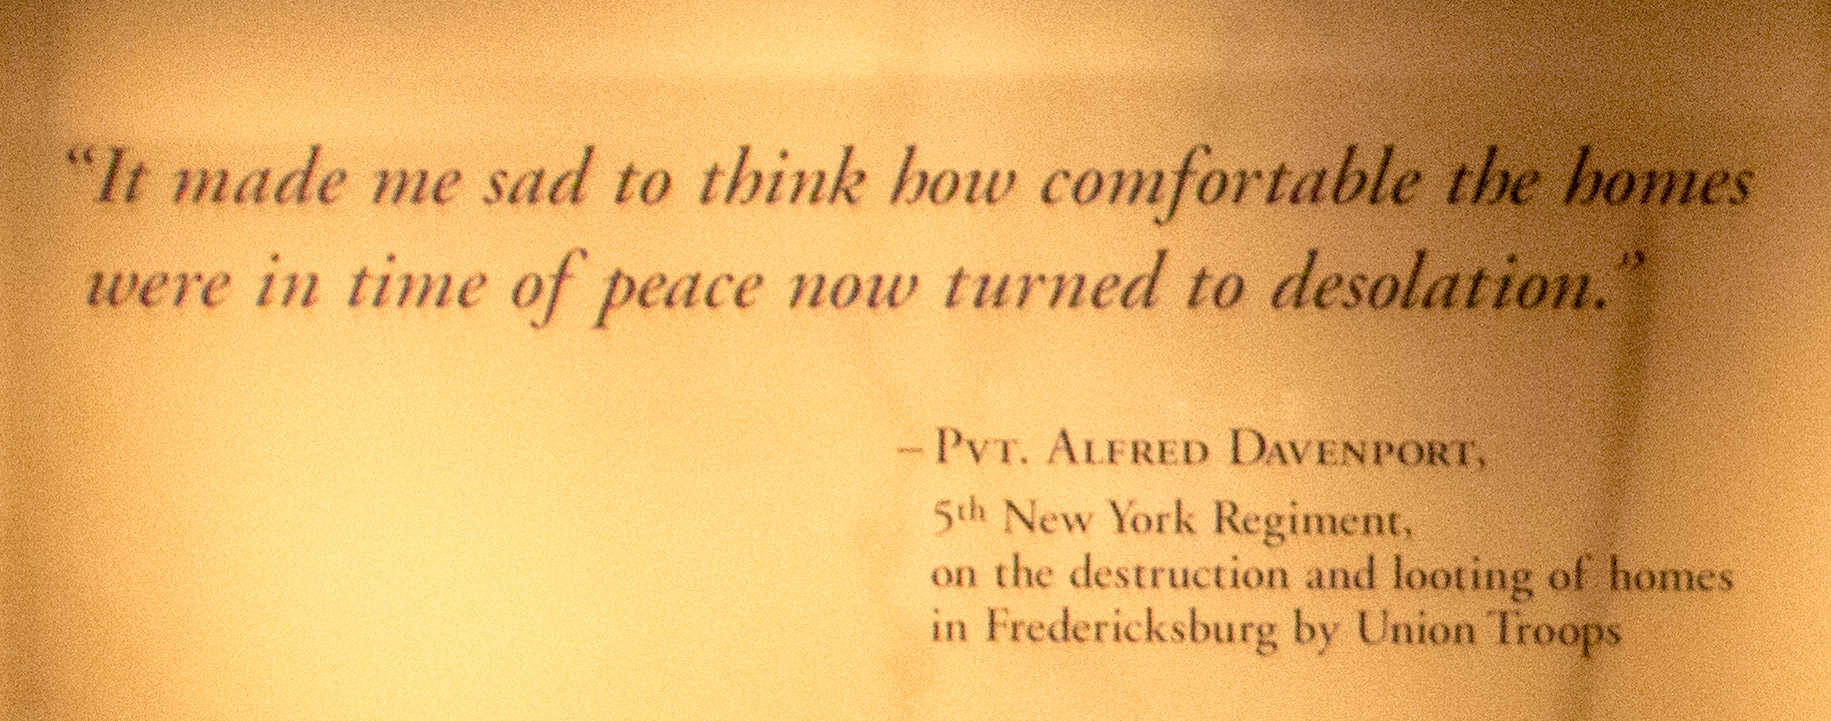 National Civil War Museum quote 2